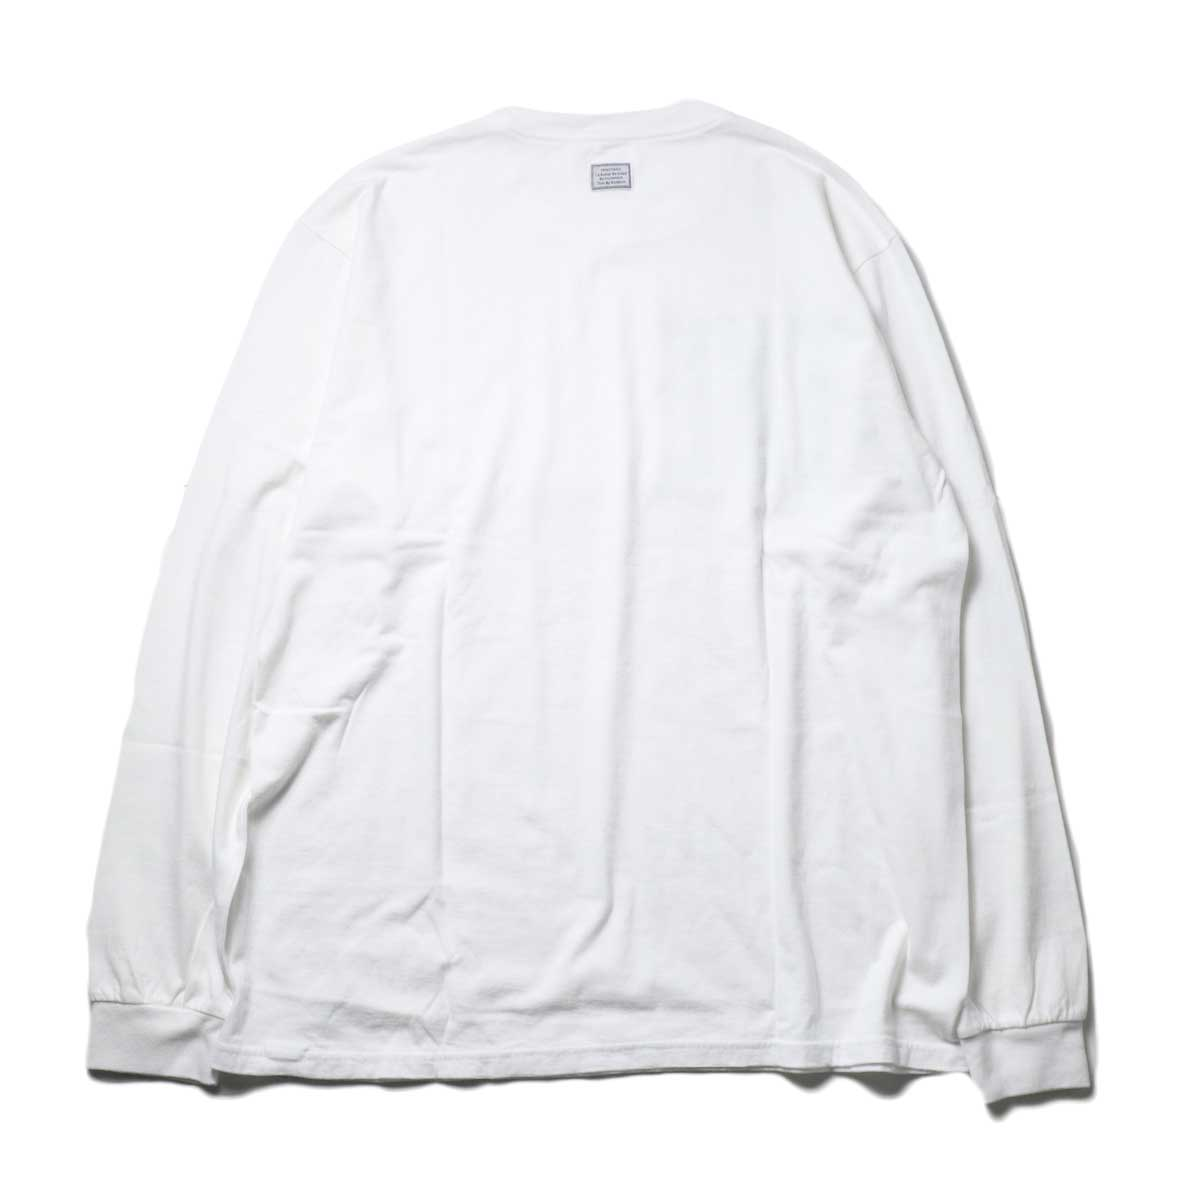 TANGTANG / ARCHIVE -THE- (White)背面